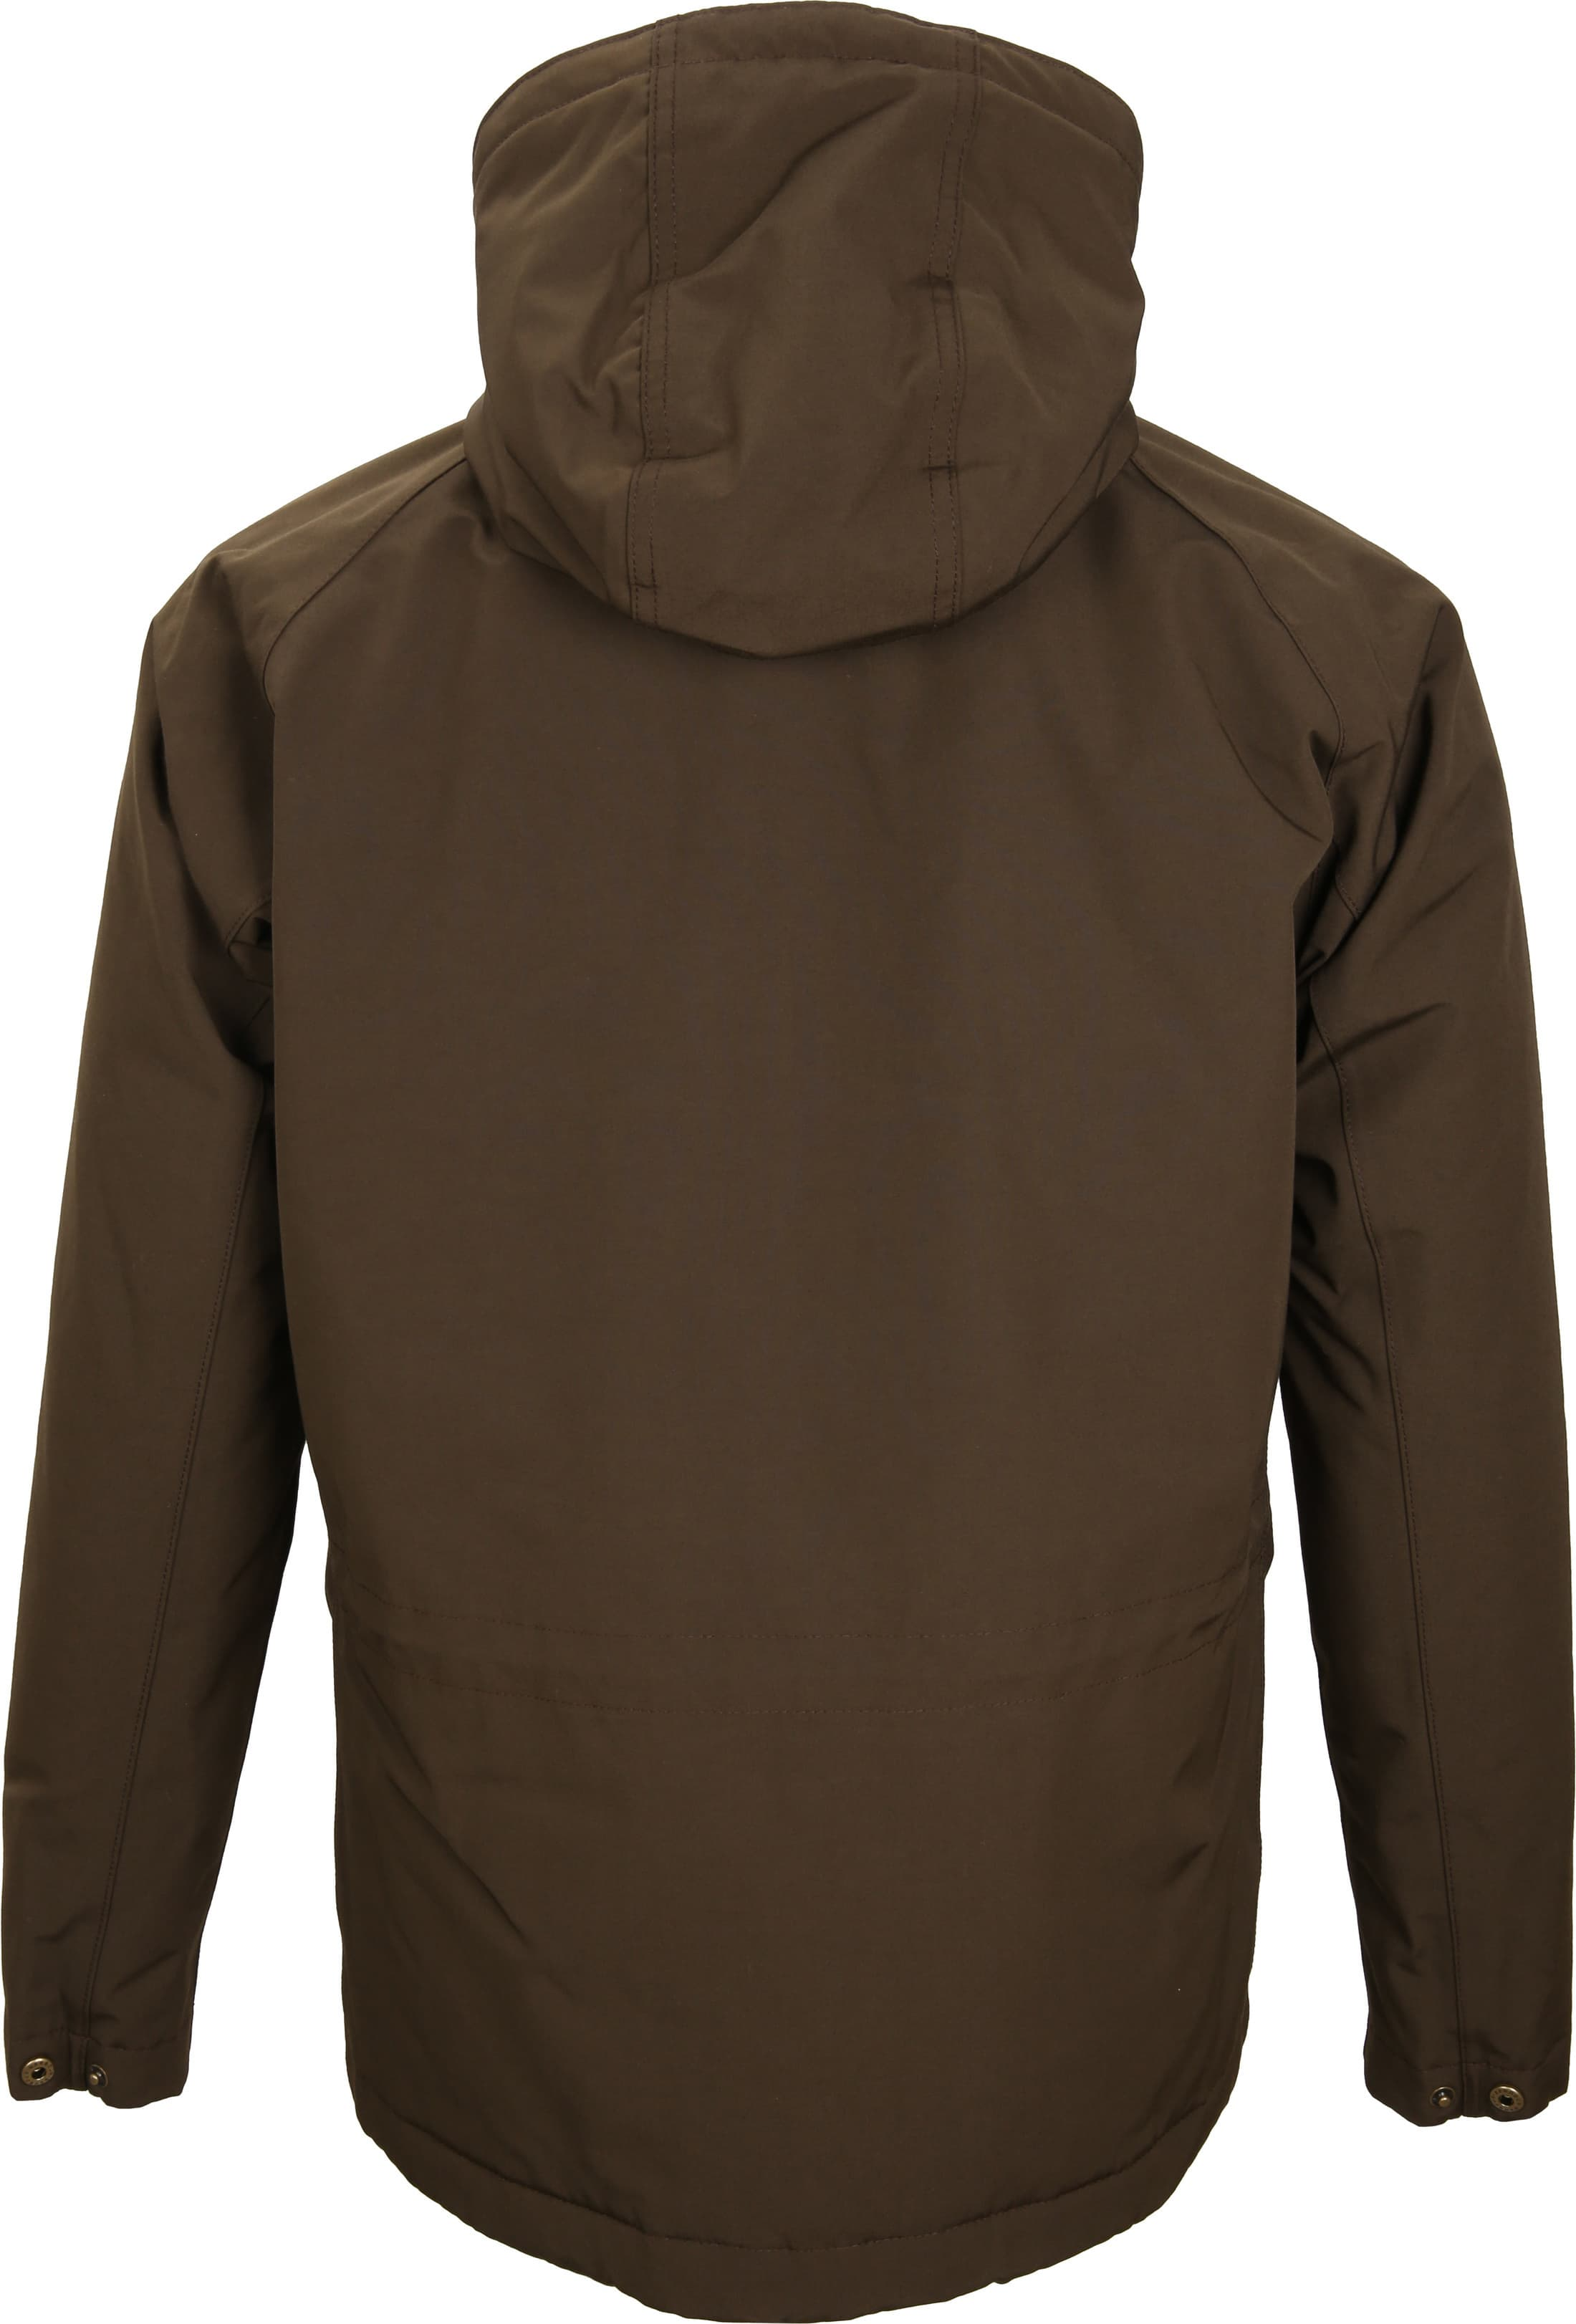 Barbour Whitstable Jacke Oliv foto 7